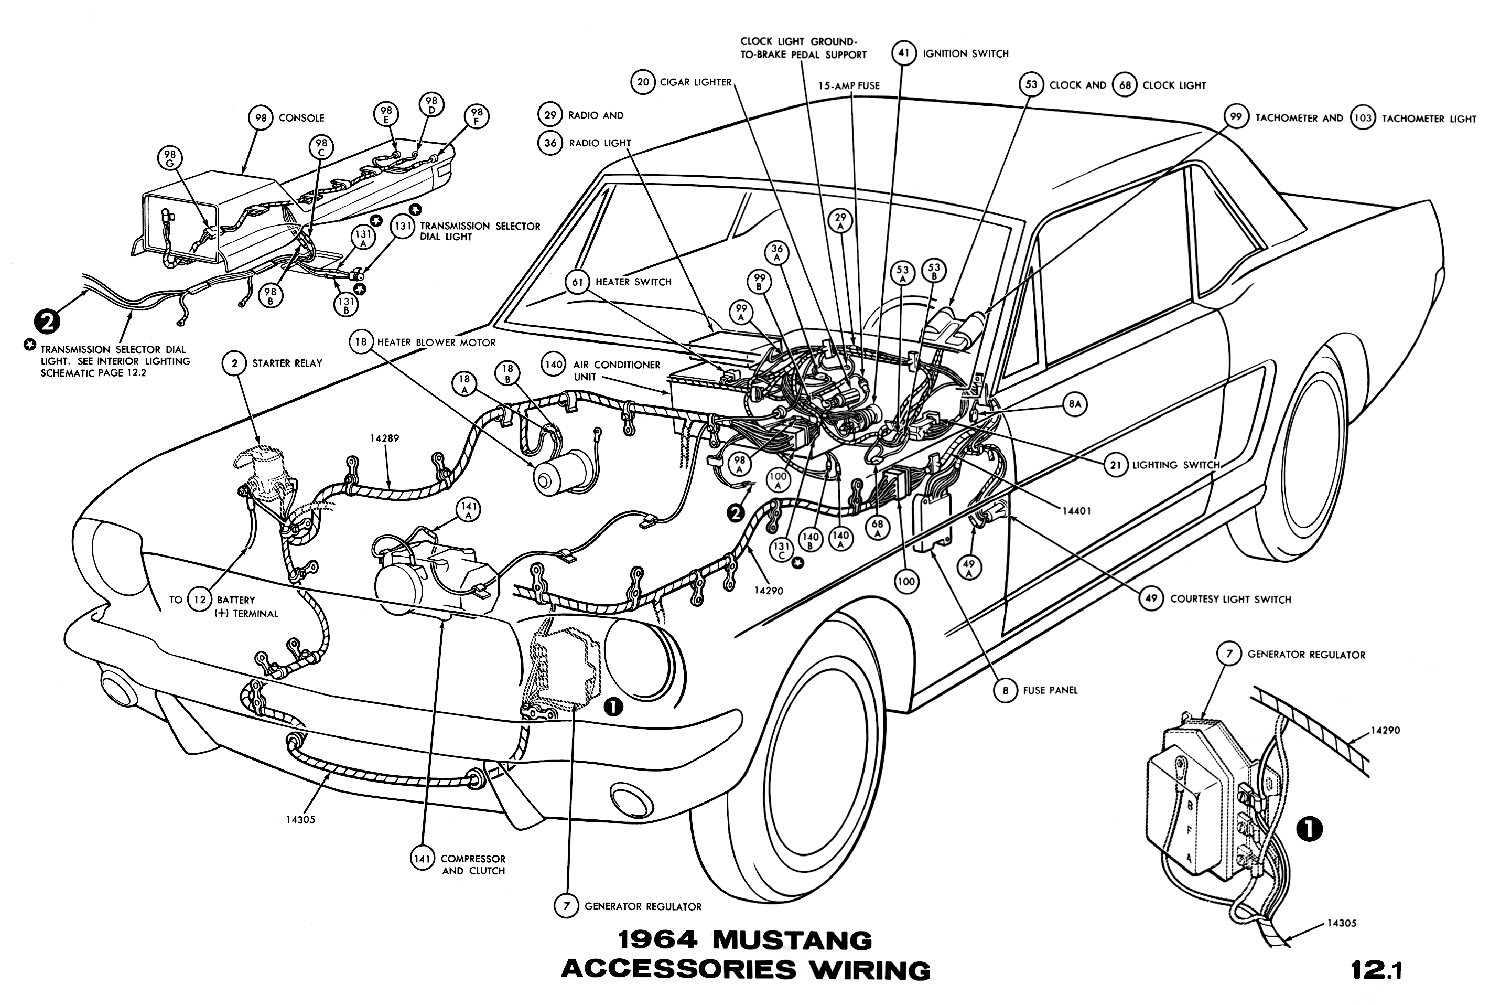 1966 mustang dash light wiring diagram square d 3 phase motor starter 1965 courtesy free engine